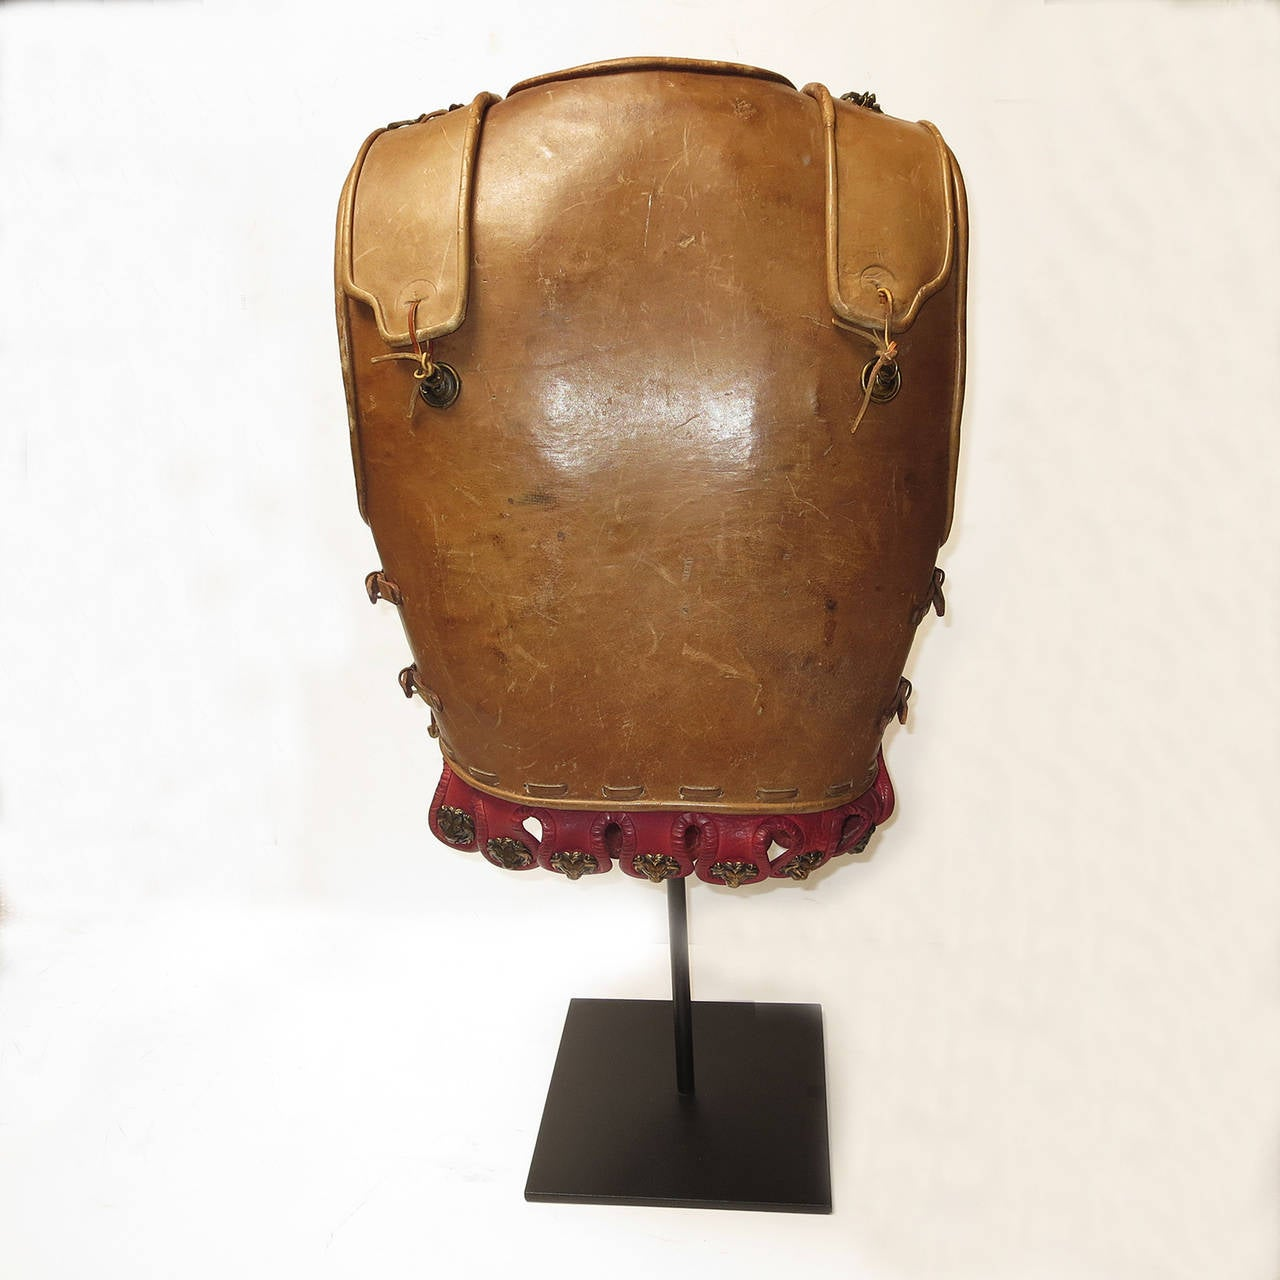 Other Telly Savalas Leather Chest Plate Prop from